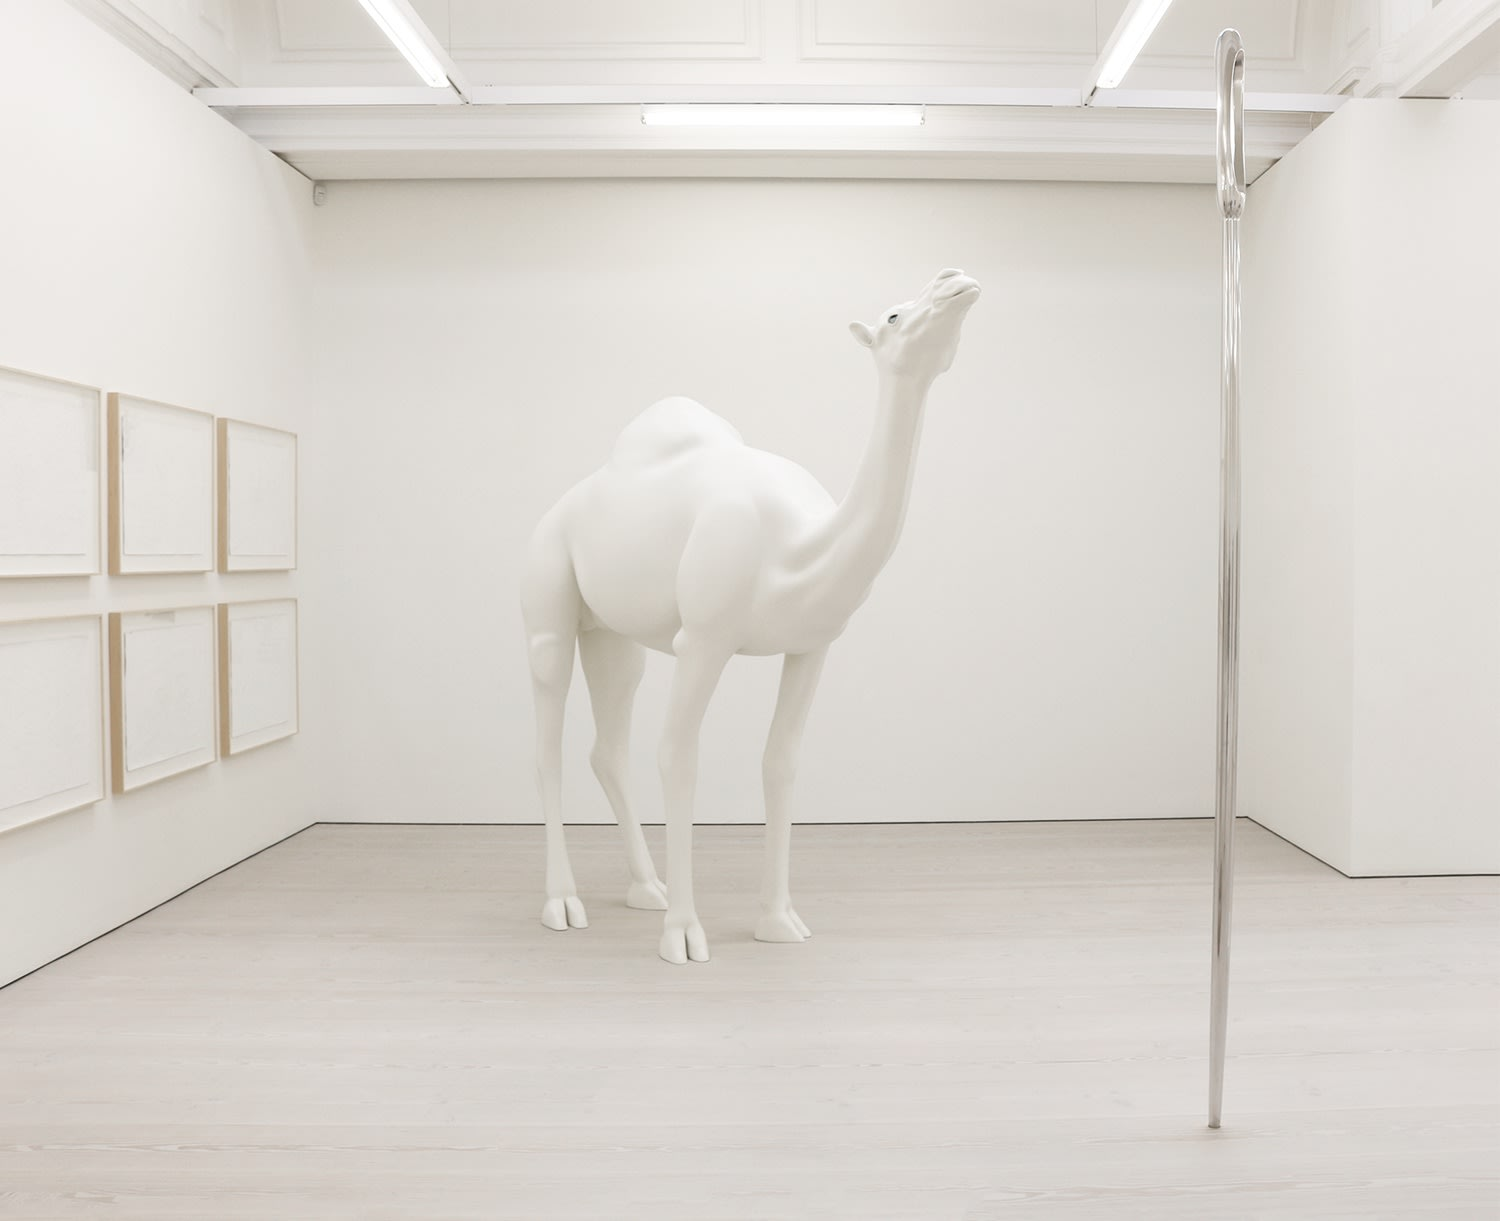 Gallery view of white camel statue with blue eyes.